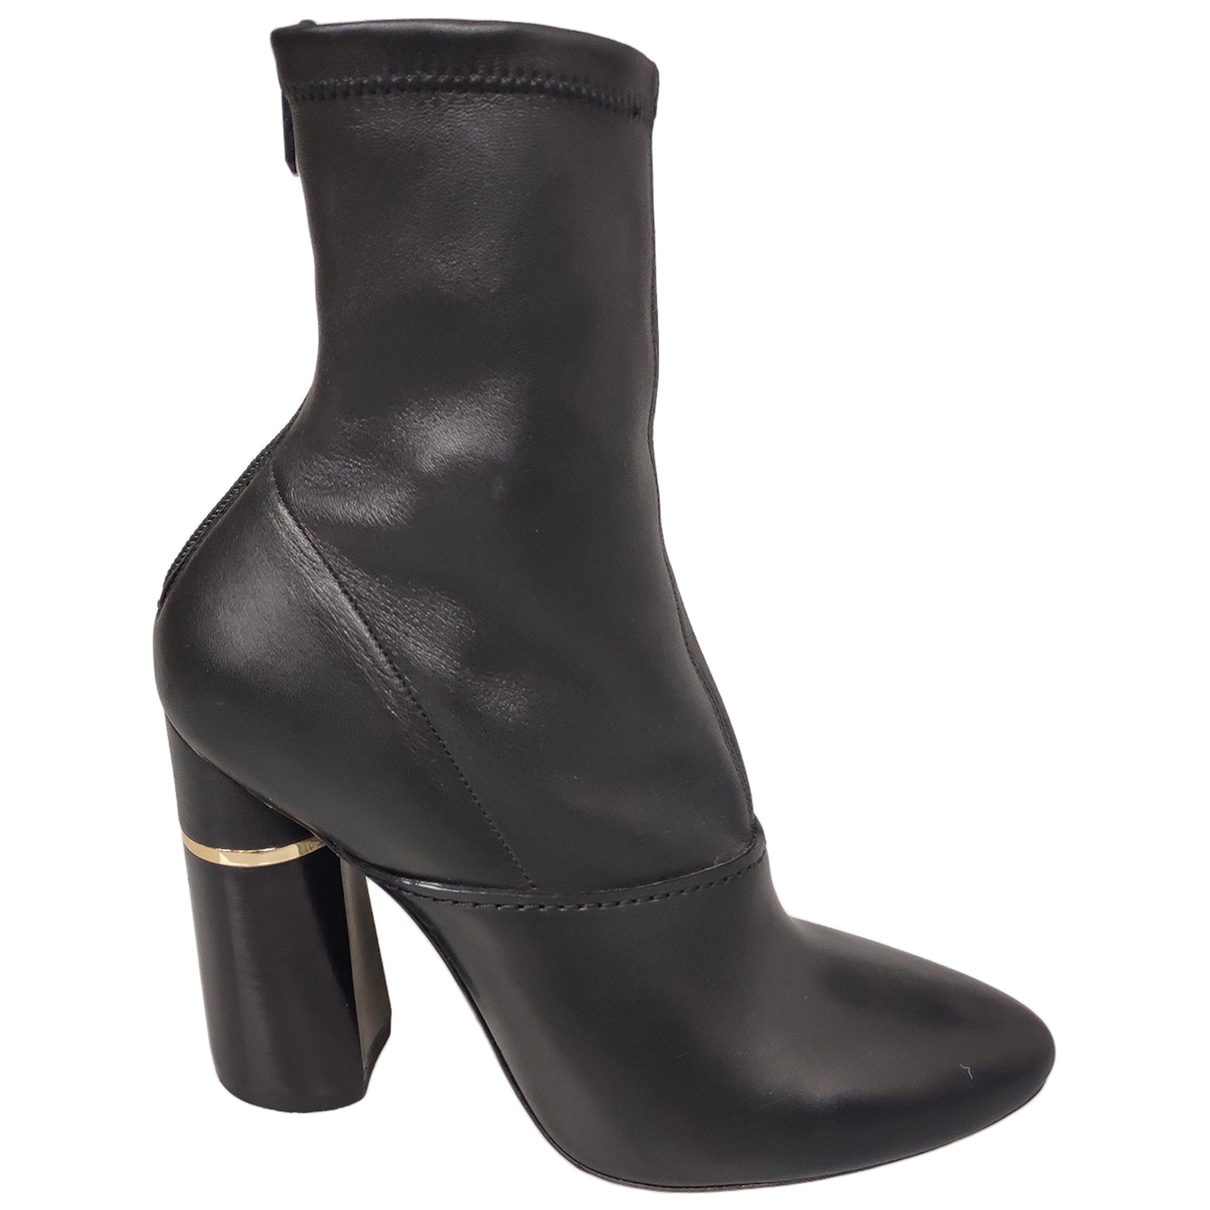 3.1 Phillip Lim \N Black Leather Heels for Women 40 EU